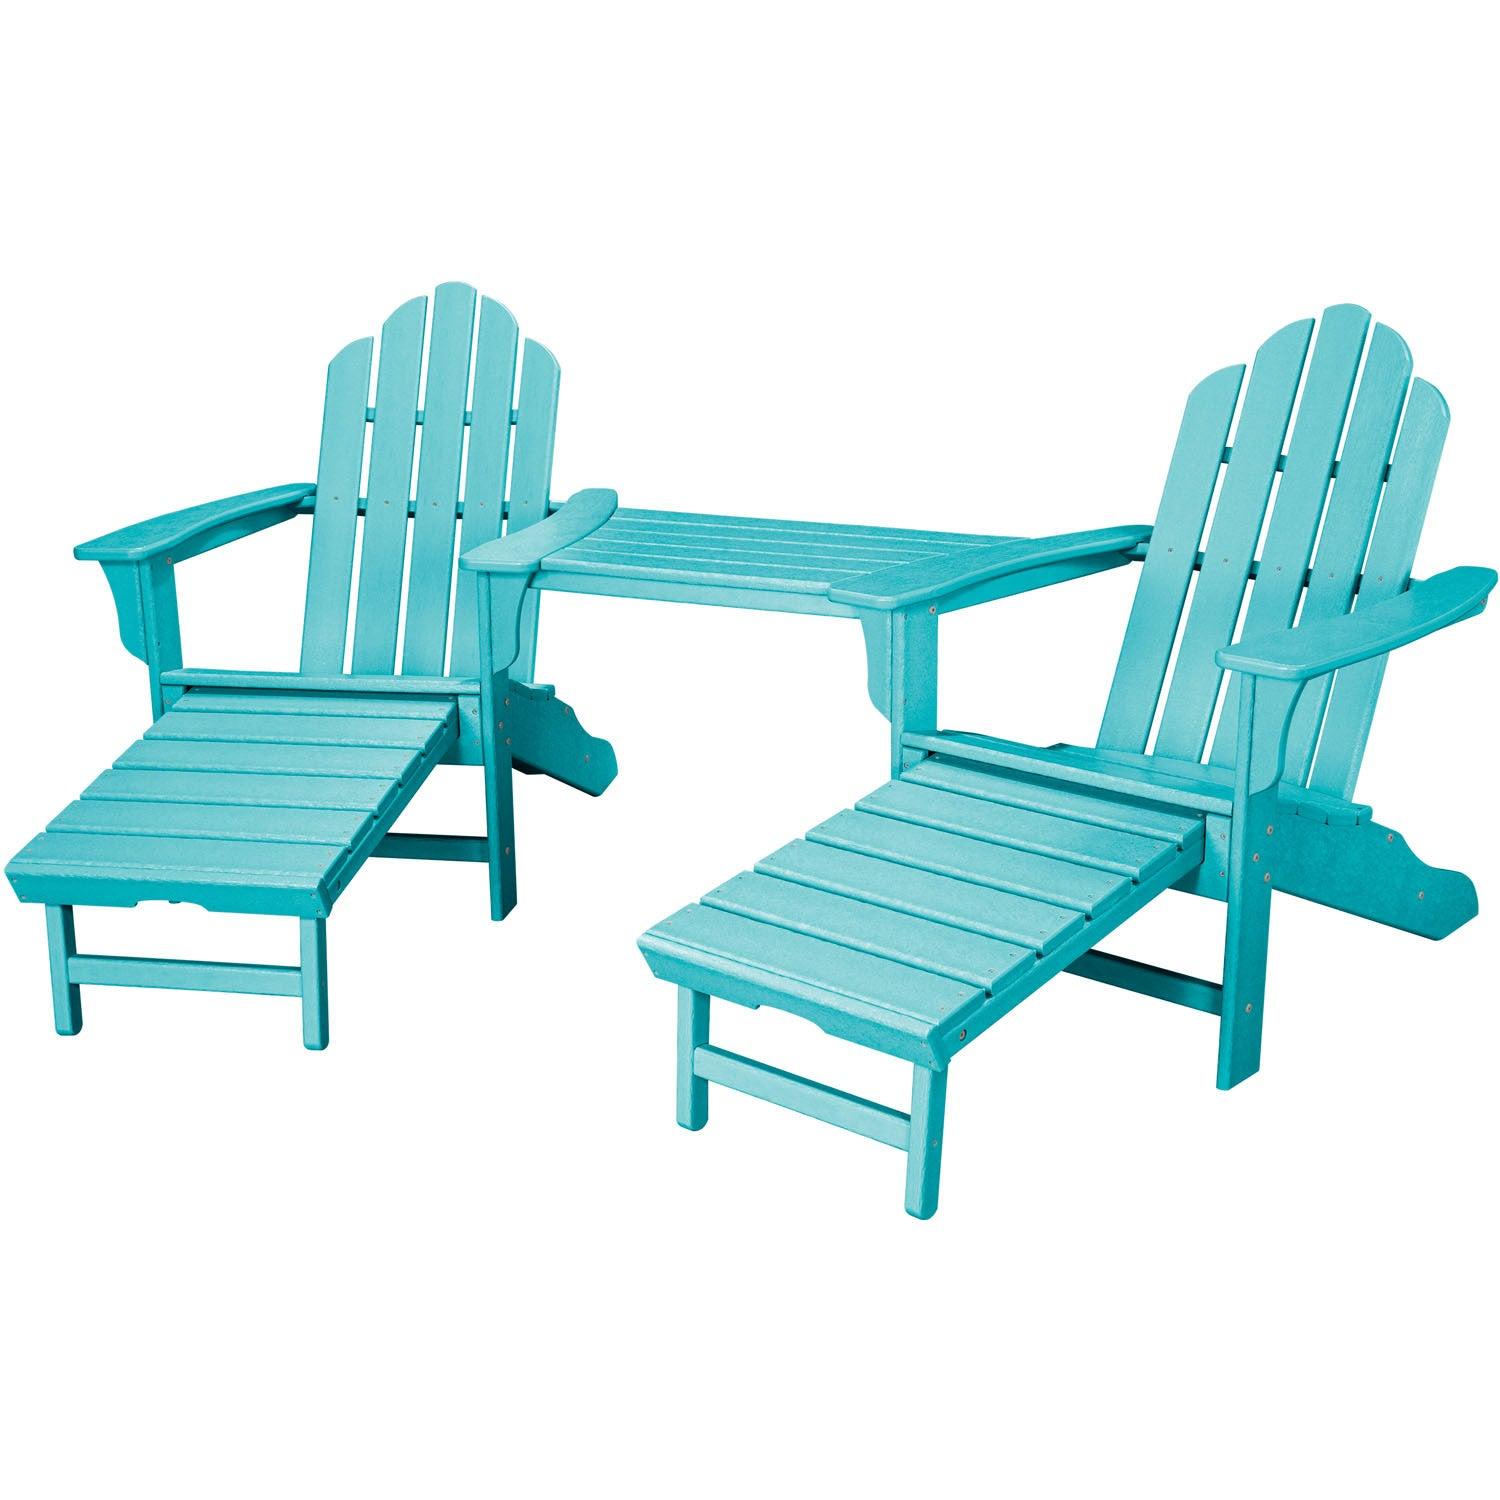 Merveilleux Hanover All Weather Rio 3pc Tete A Tete: 2 Adirondack Chair W/ Ottoman,  Tete A Tete Table   RIO3PC OTT AR   Aruba